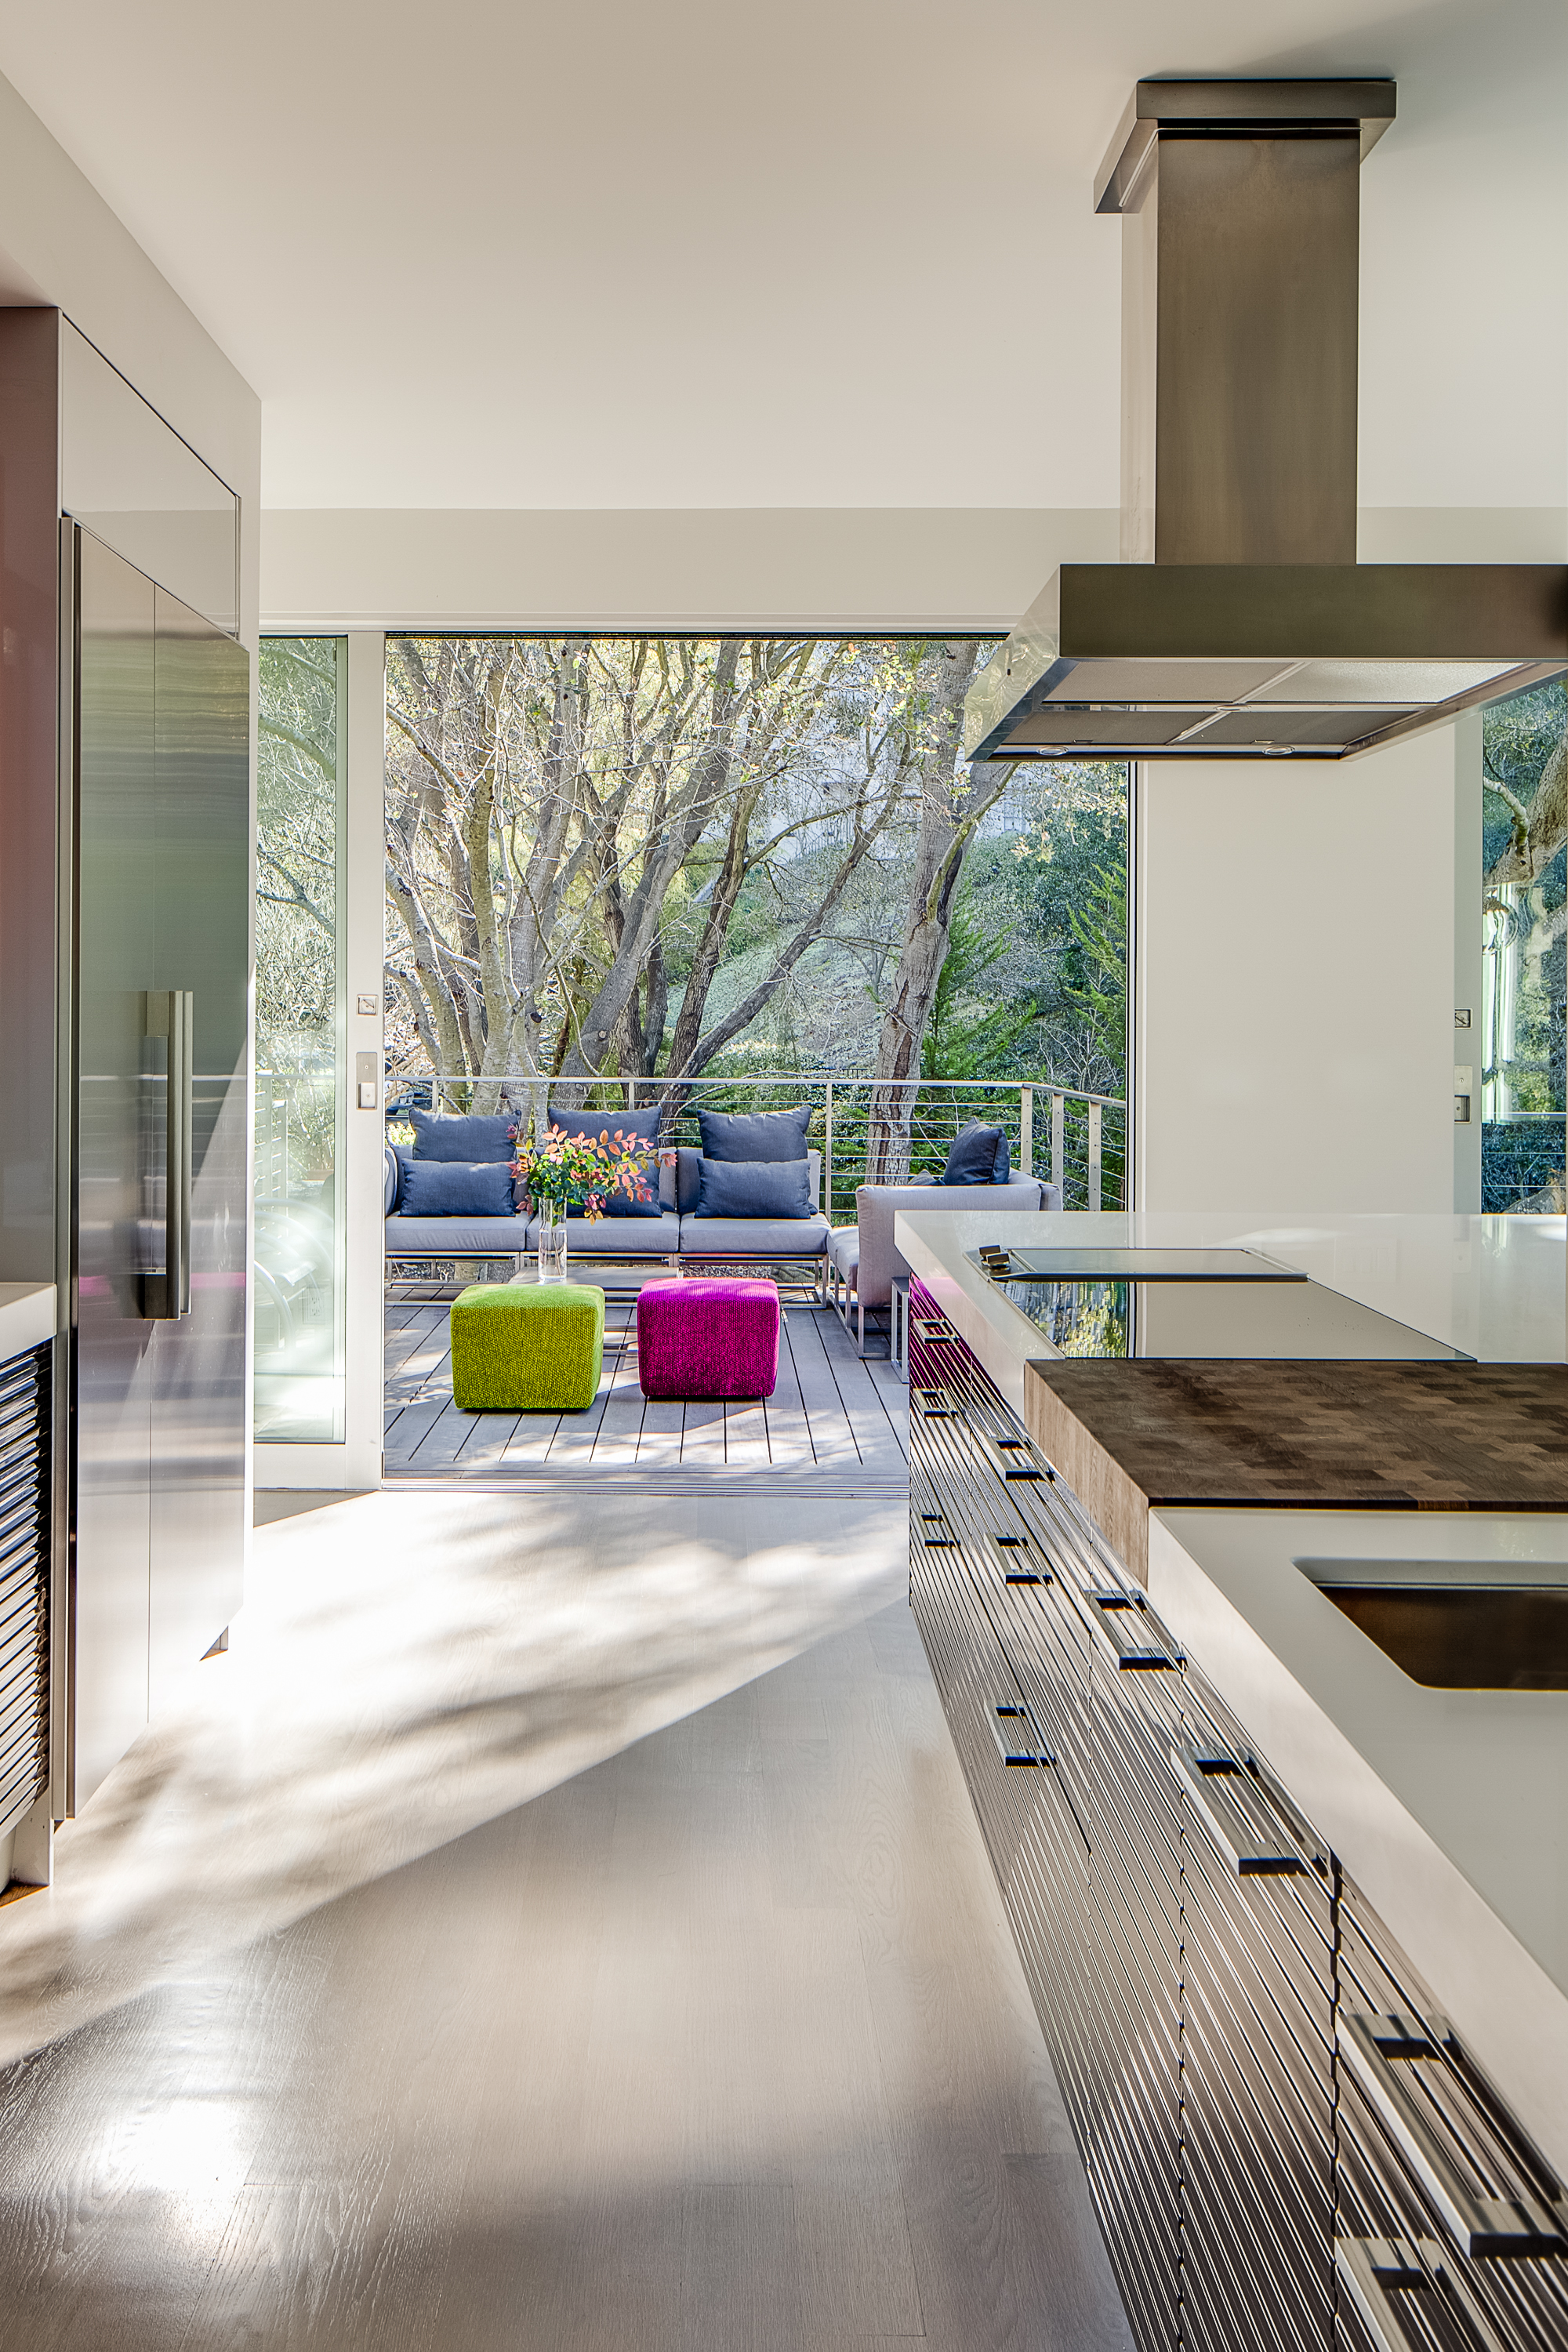 interior lighting design for homes. Interior Design By Mark Brand Architecture In Collaboration With Applegate Tran Interiors Lighting Luminae Souter For Homes